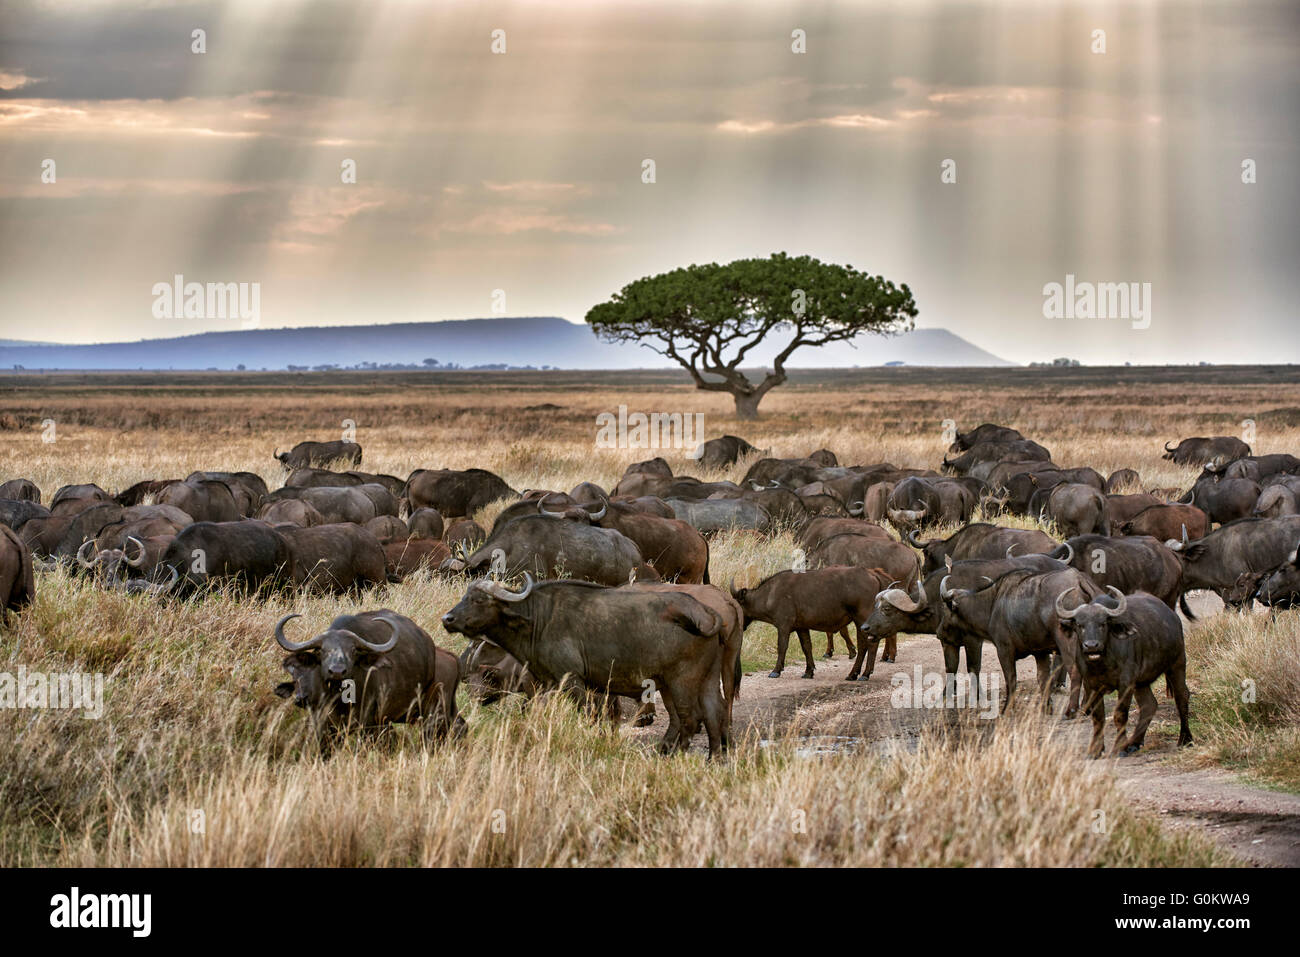 herd of African buffalos (Syncerus caffer) at sunset in Serengeti National Park, UNESCO world heritage site, Tanzania - Stock Image